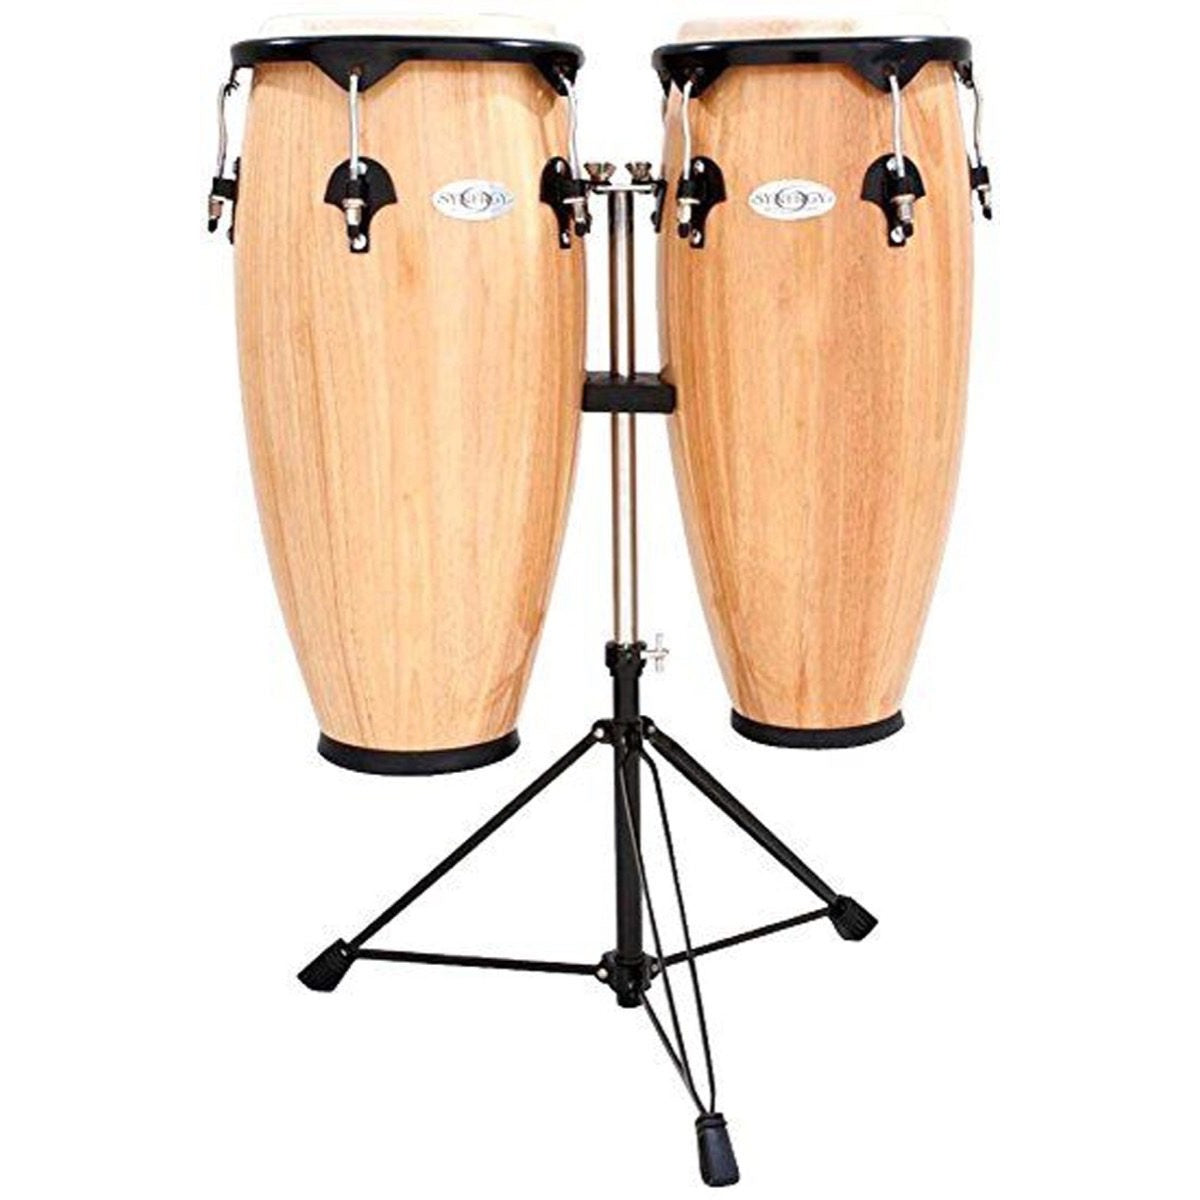 Toca Synergy Congas (with Stand), Natural